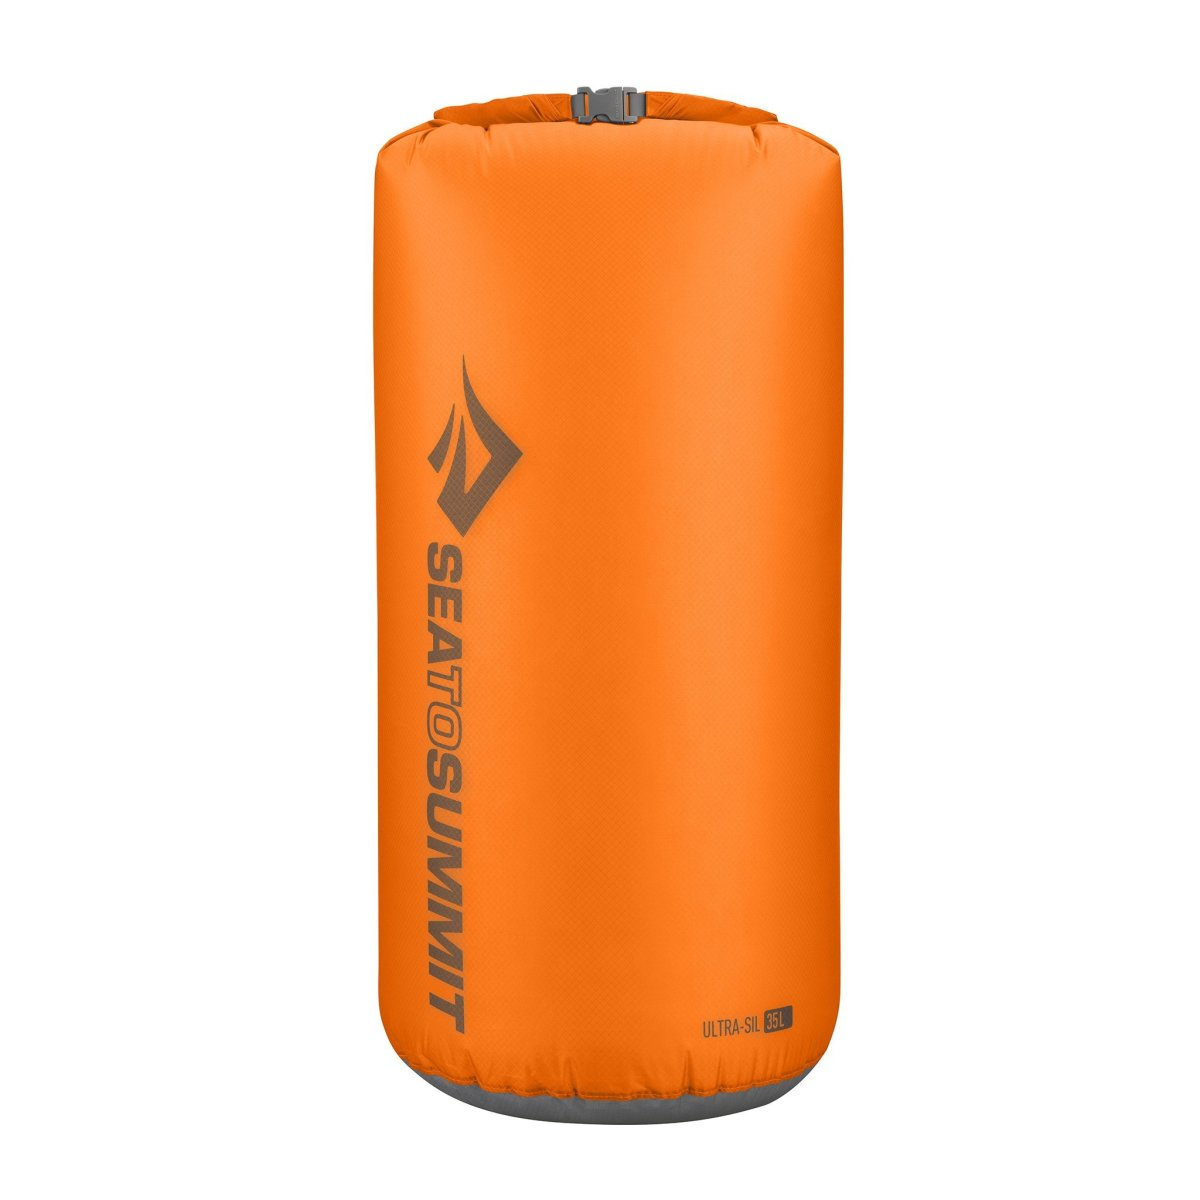 Гермочехол Sea to summit Ultra-Sil Dry Sack Orange, 35 L STS AUDS35OR